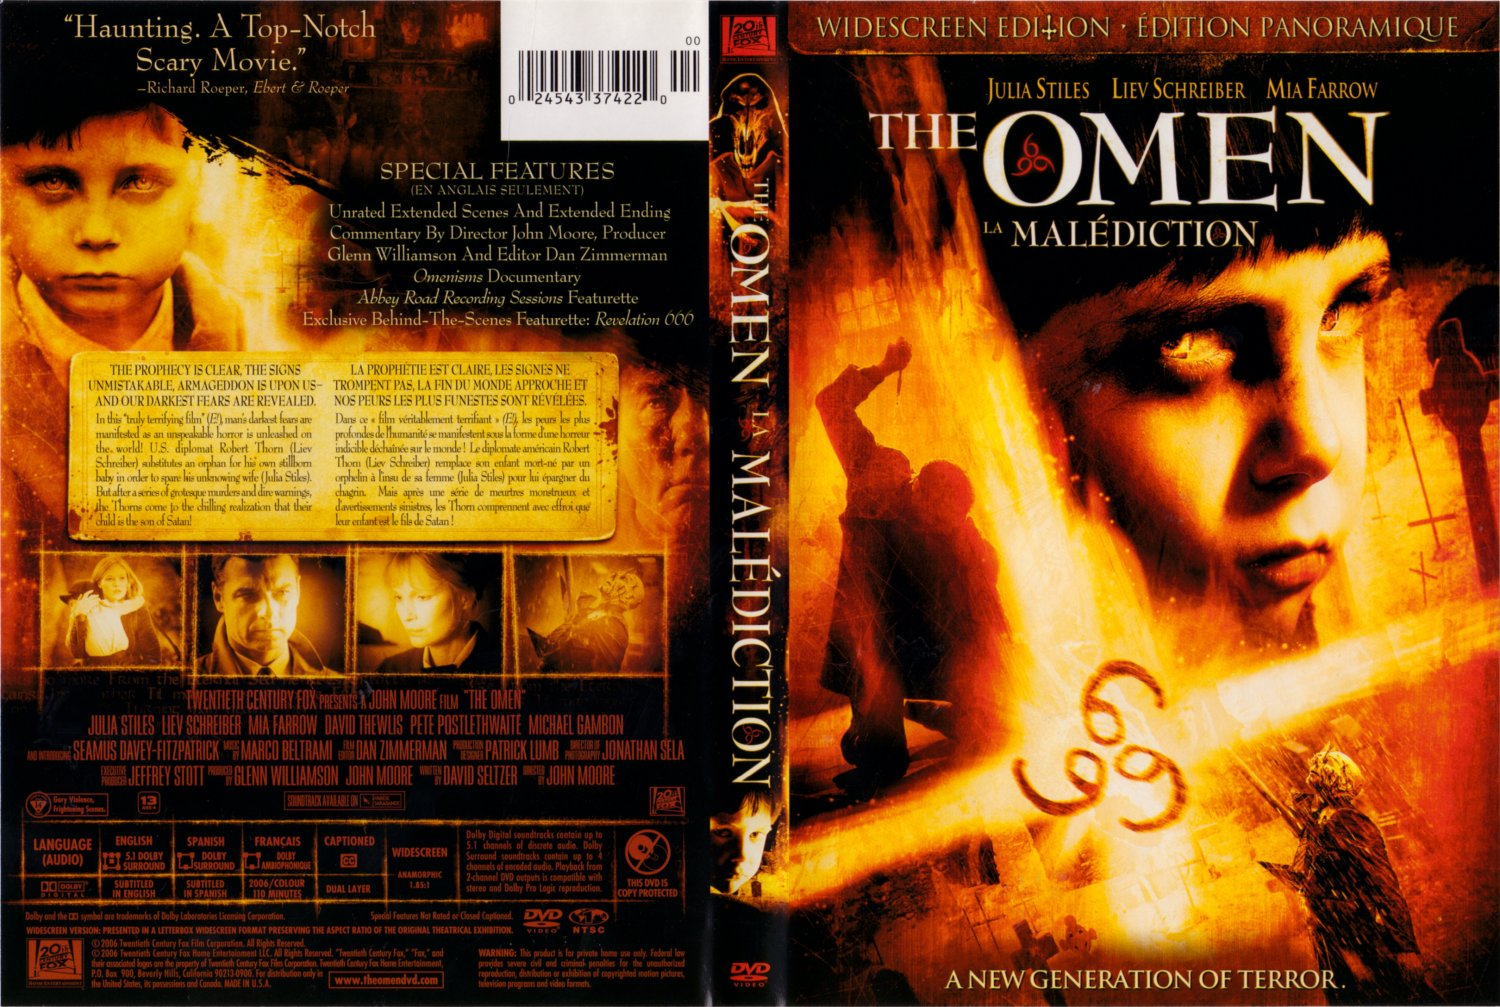 movie review the omen Audience reviews for the omen all this is not to say that the omen is a bad film, just that it works to normalize a controversial cultural ideology.